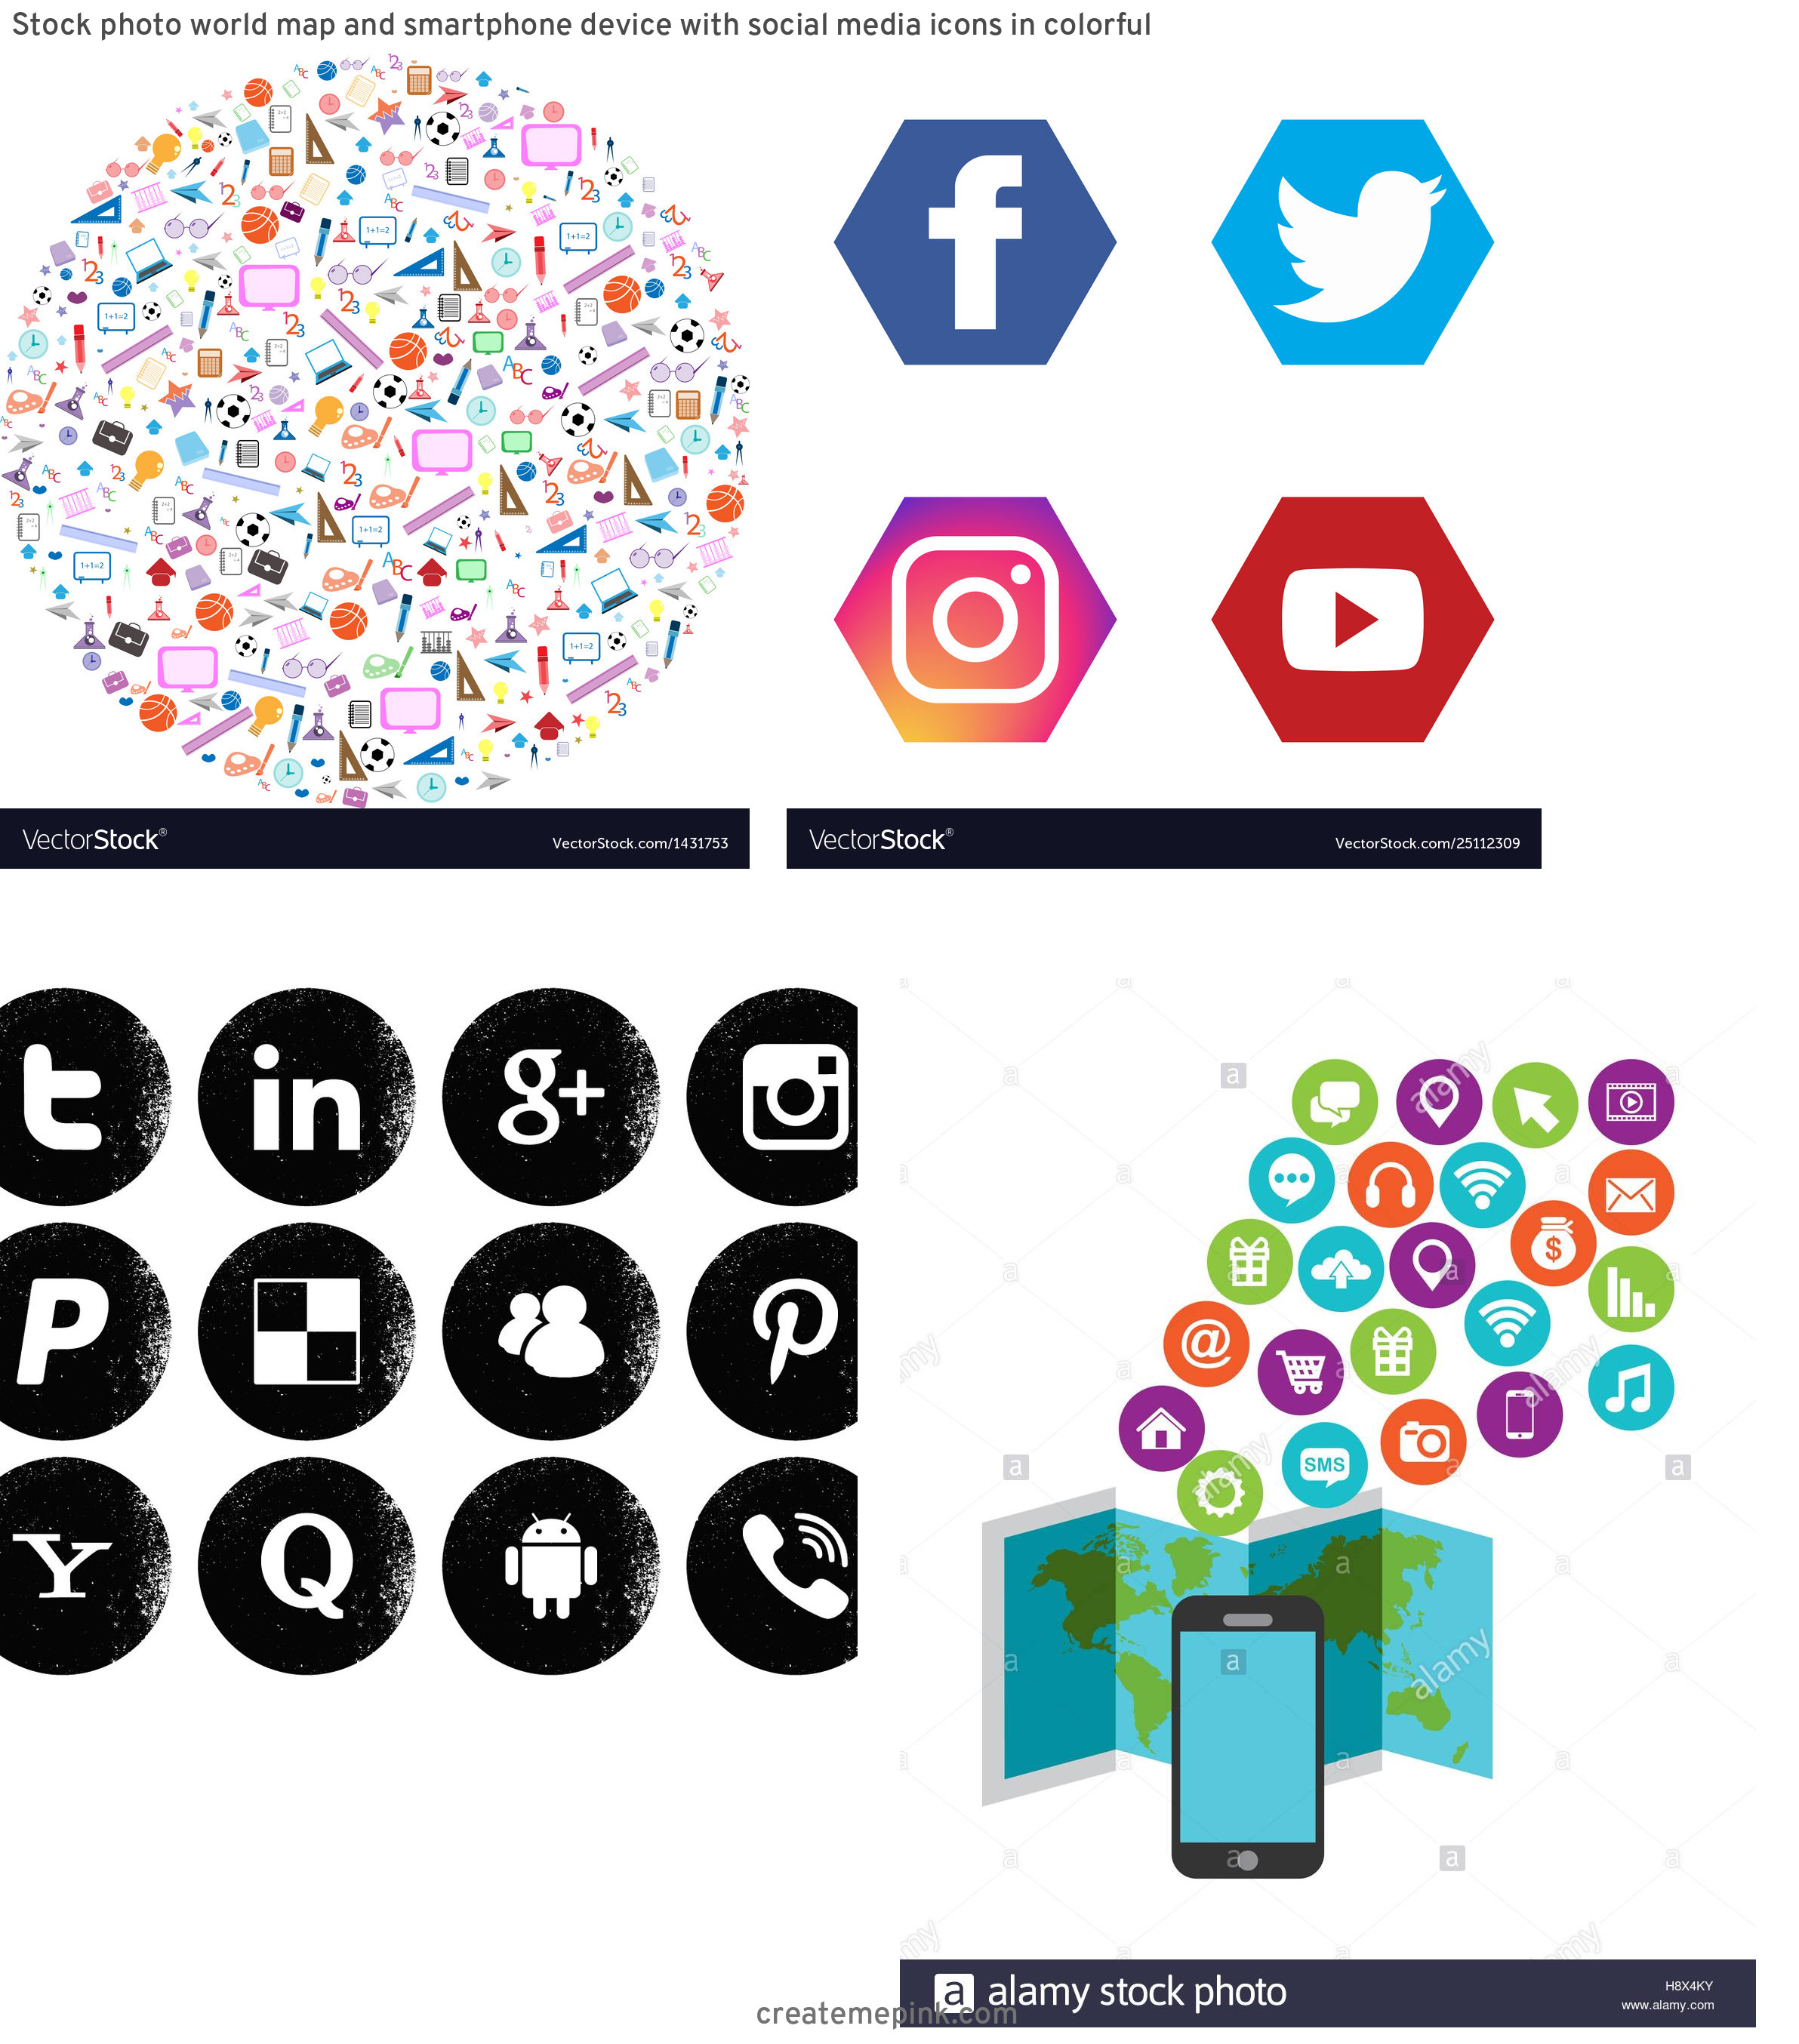 Pencil Icon Vectors Social Media: Stock Photo World Map And Smartphone Device With Social Media Icons In Colorful